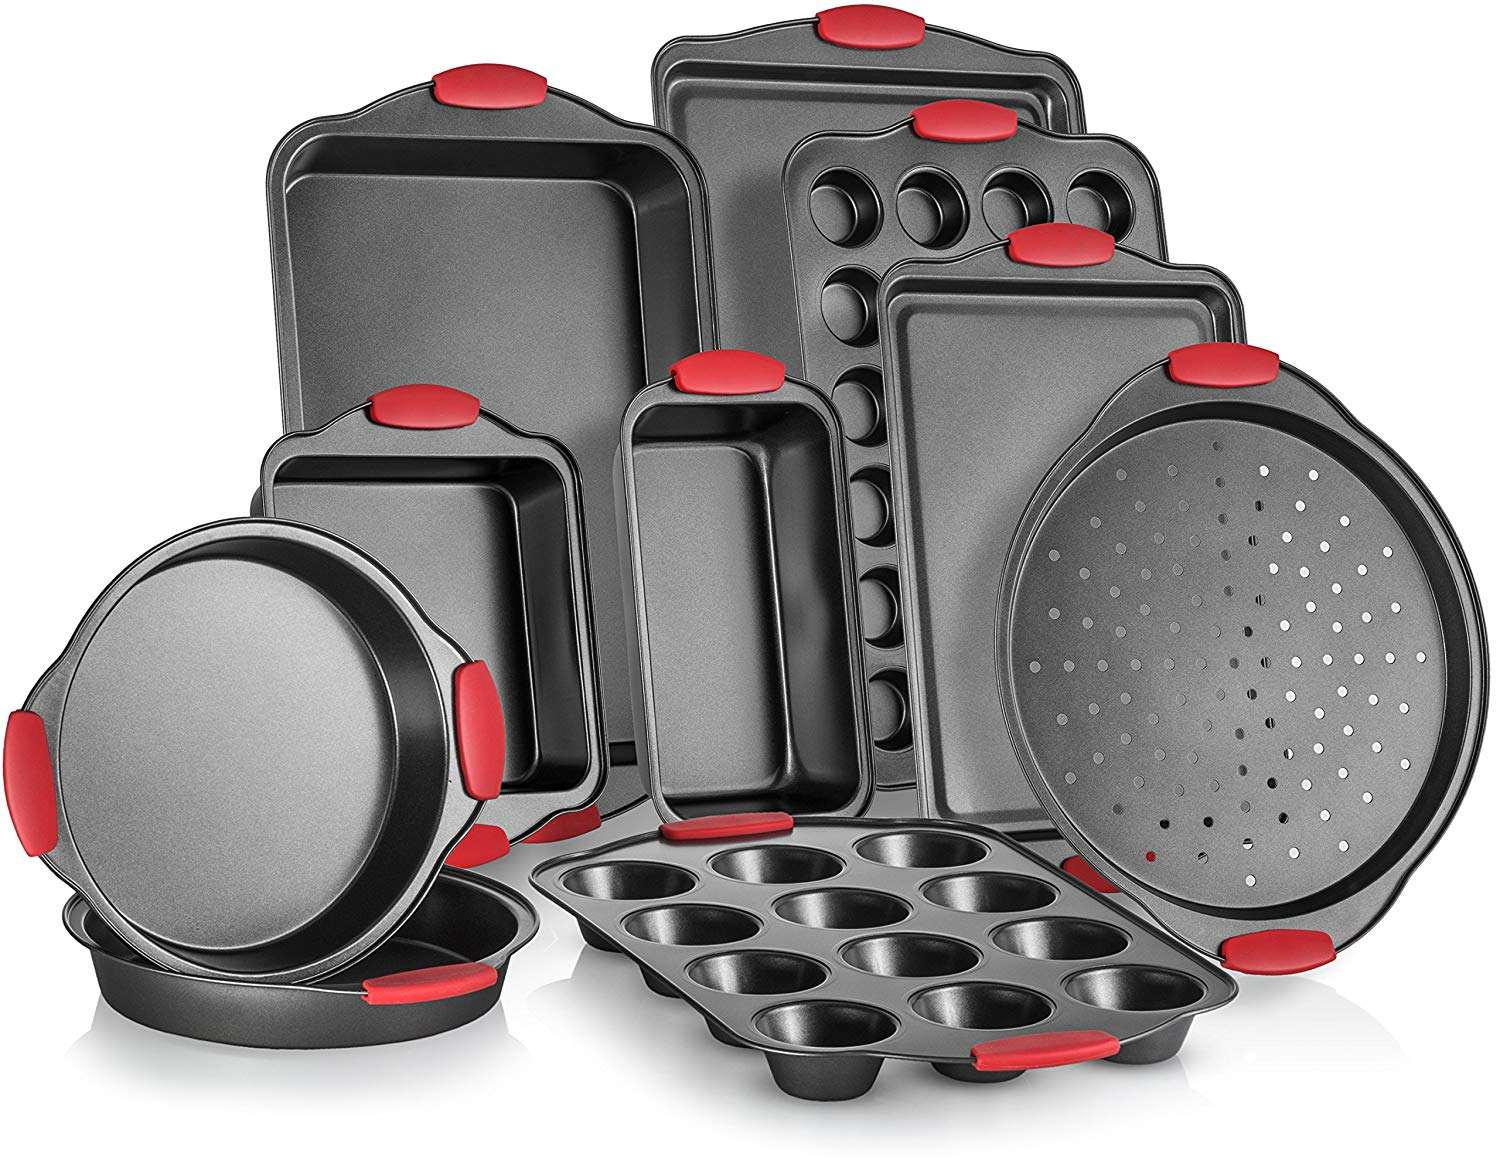 Amazon hot selling 10-Piece Nonstick Carbon Steel Bakeware Sets With Red Silicone Handles Nonstick Bakeware Sets